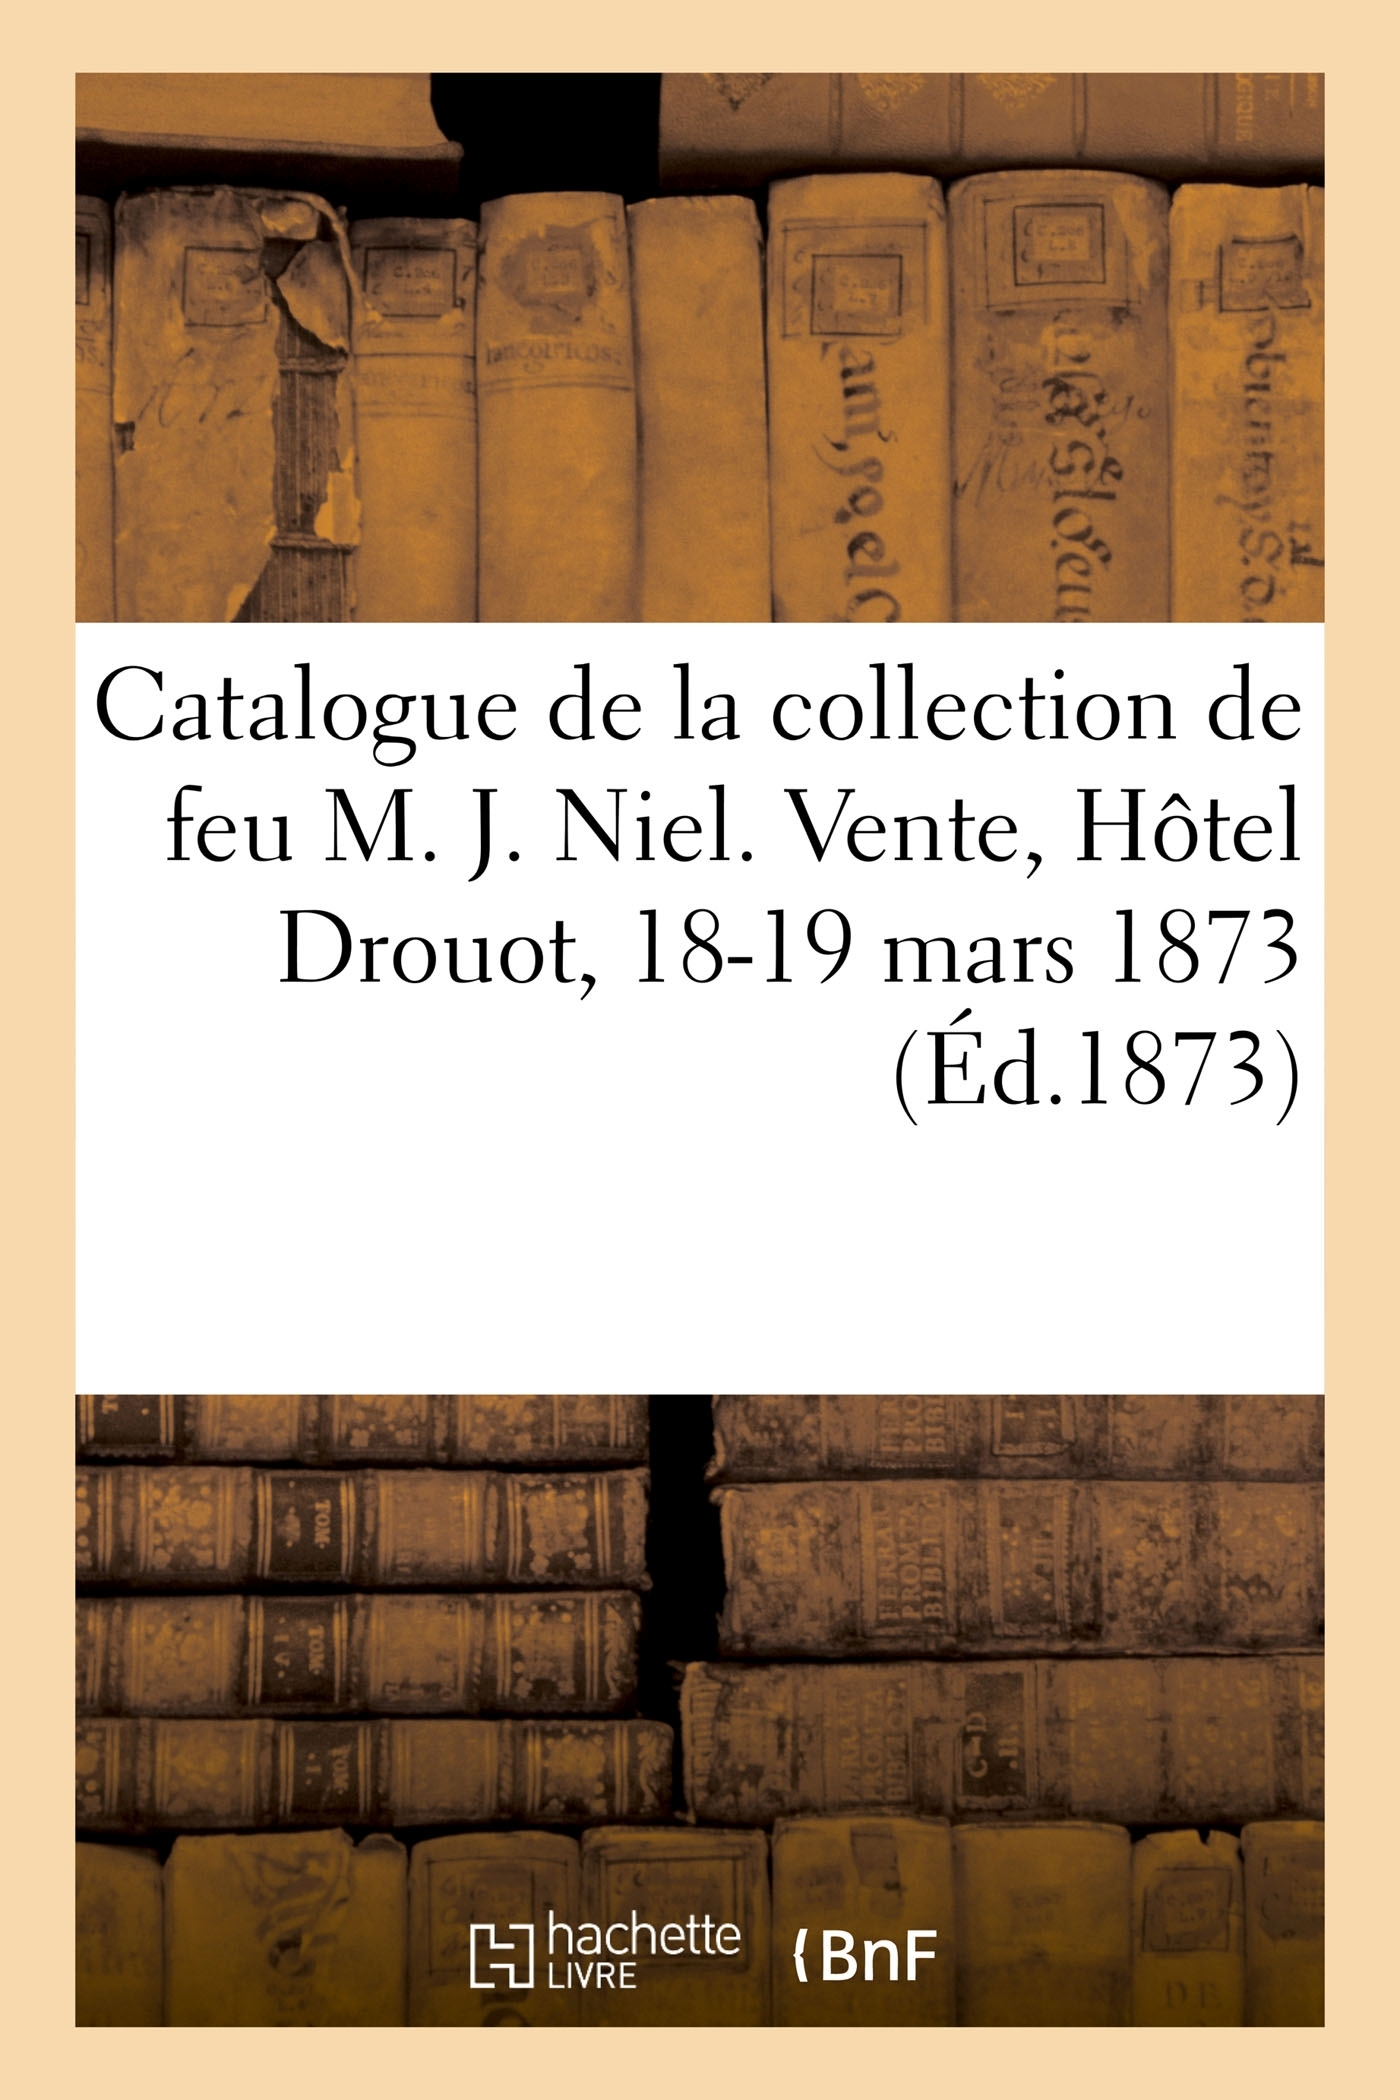 CATALOGUE DE LA COLLECTION DE FEU M. J. NIEL, BIBLIOTHECAIRE DU MINISTERE DE L'INTERIEUR